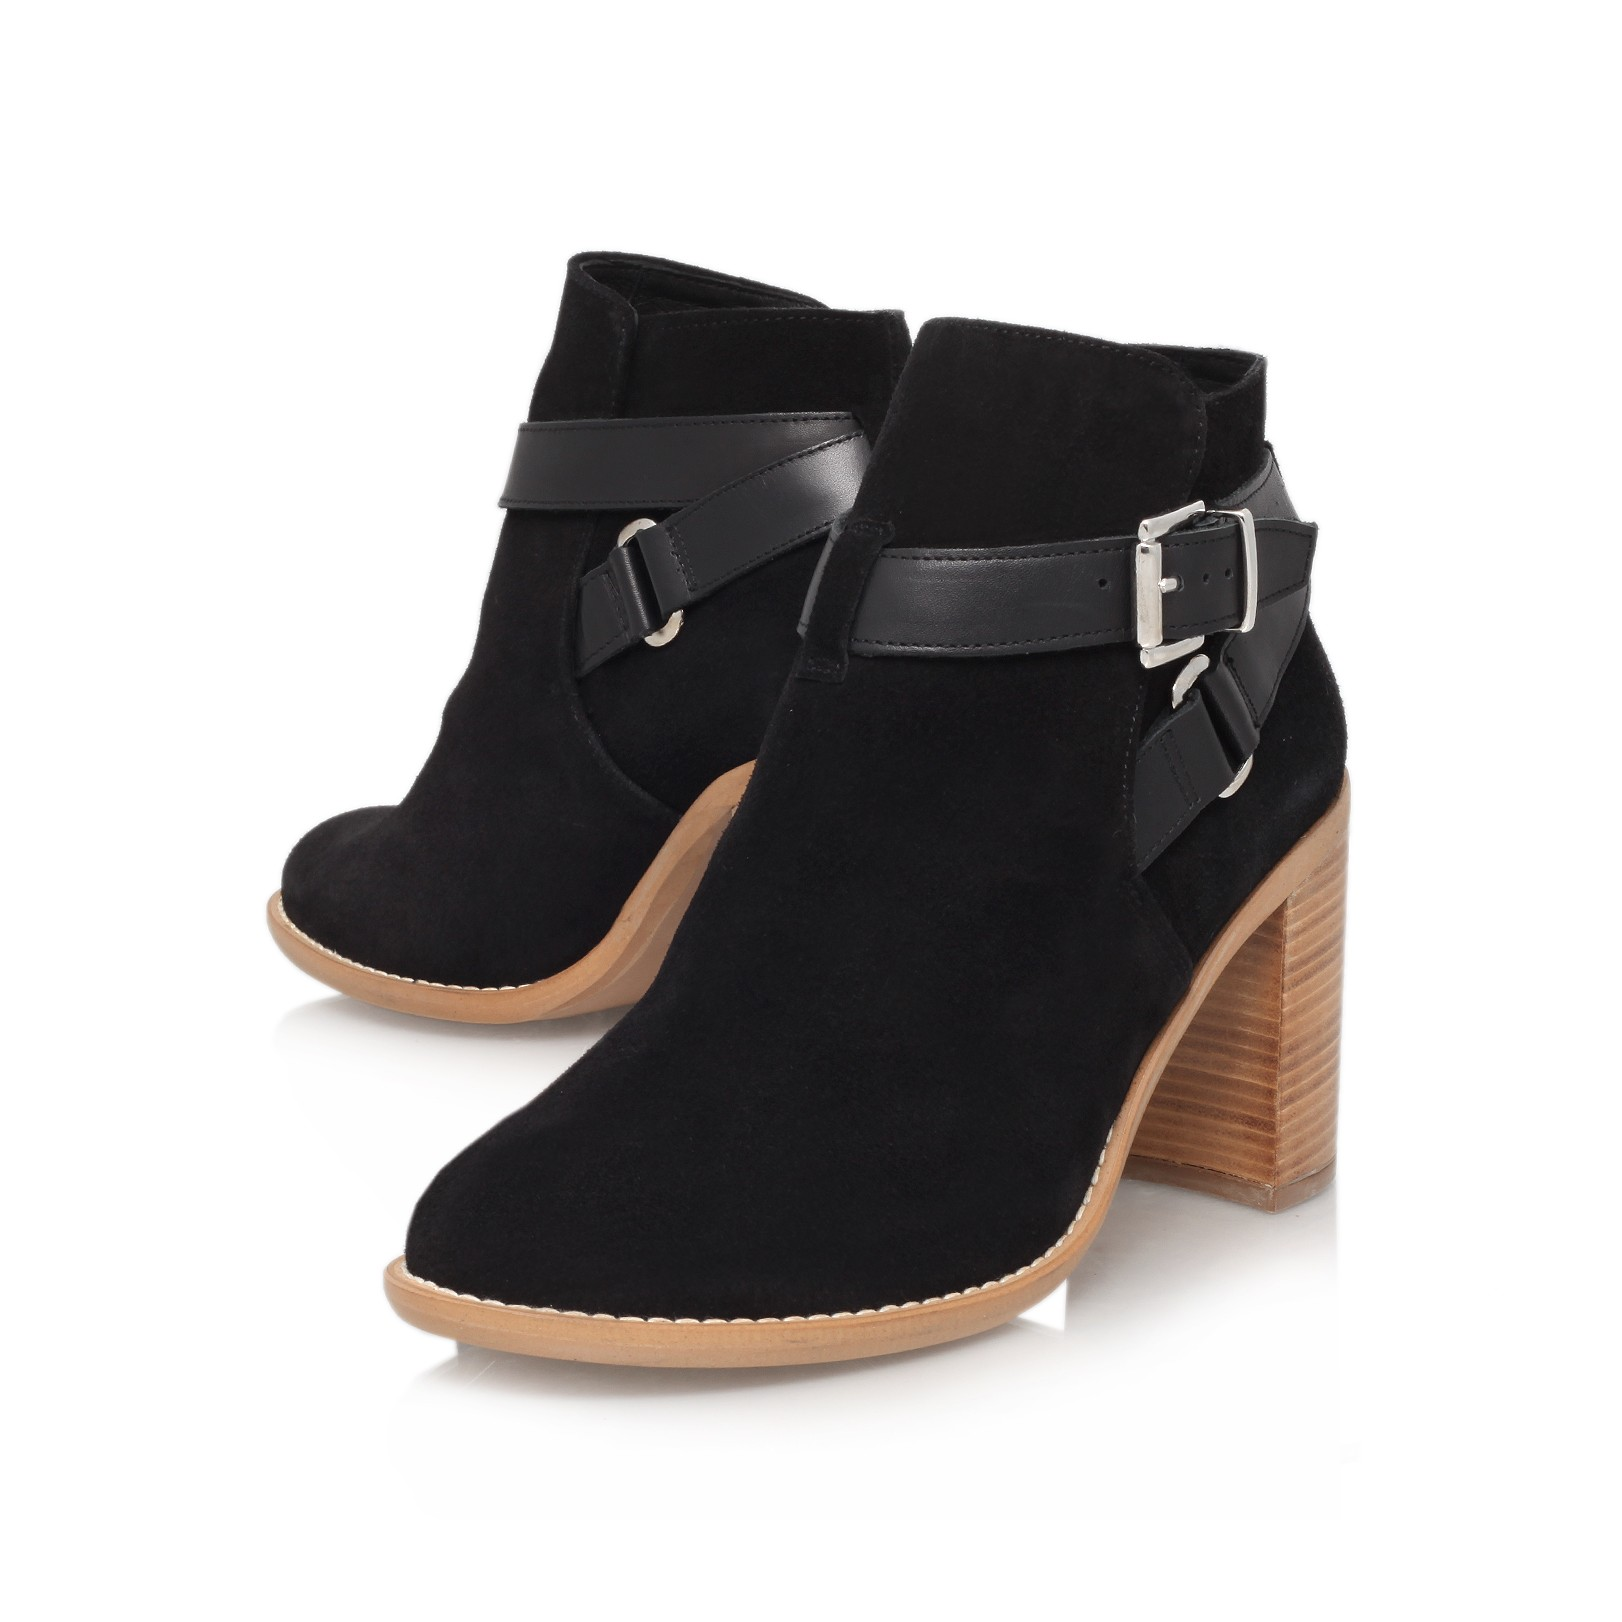 Black Heel Ankle Boots cbPVBnII